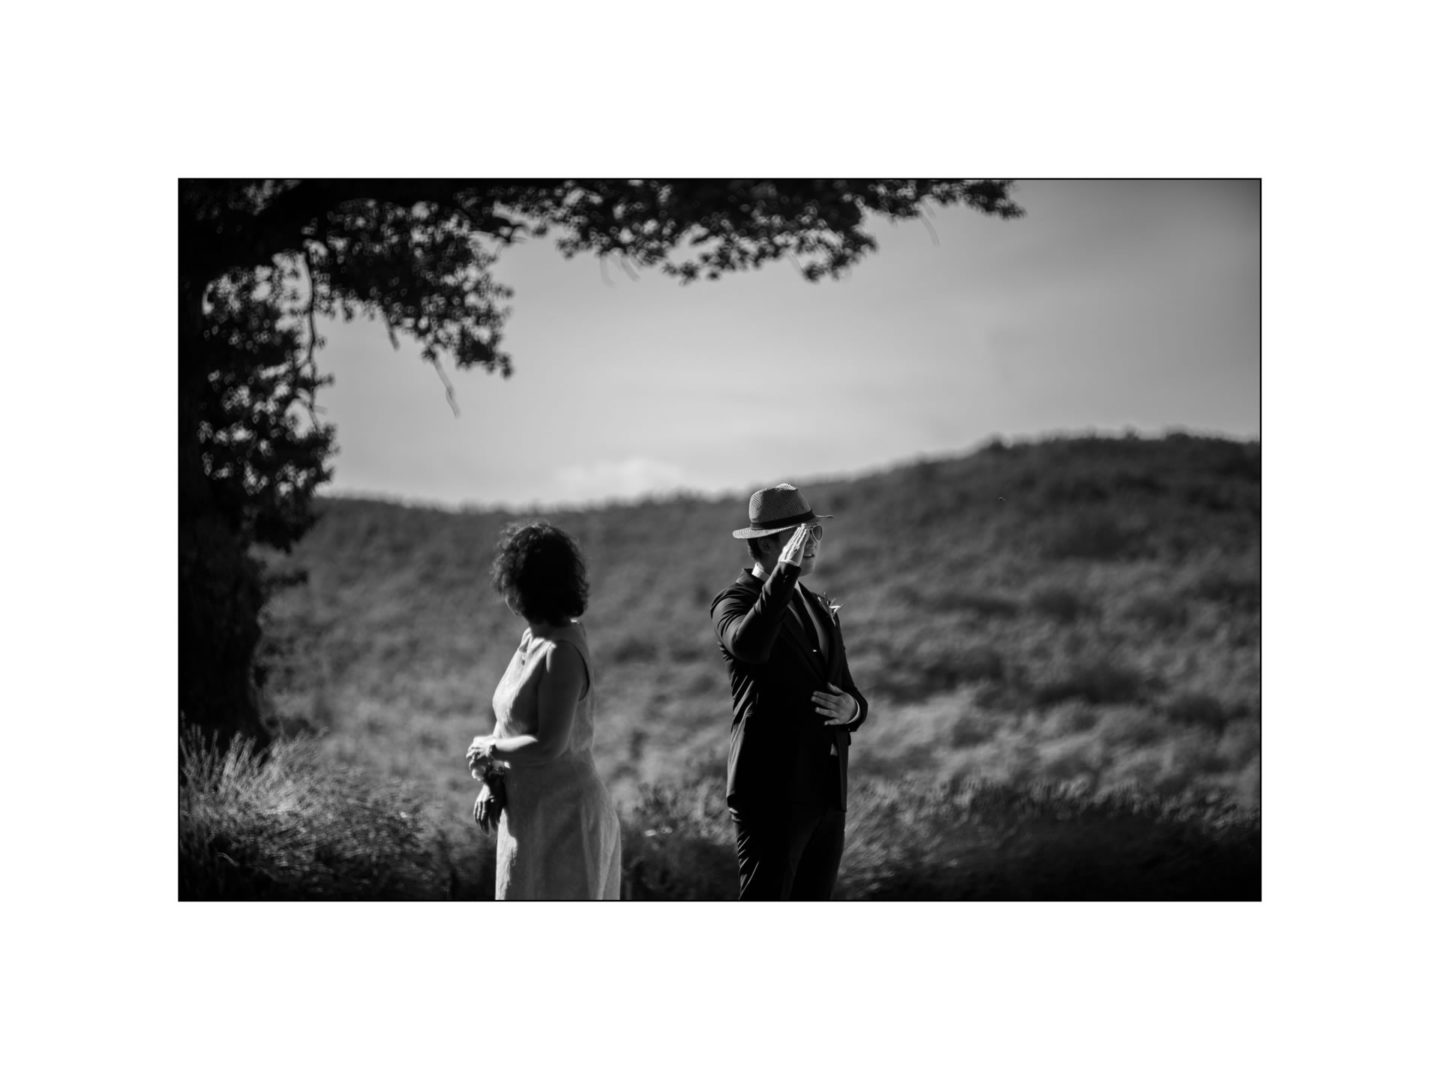 castello-di-meleto-david-bastianoni-photographer-00014 :: Black and white wedding_ Castello di Meleto :: Luxury wedding photography - 13 :: castello-di-meleto-david-bastianoni-photographer-00014